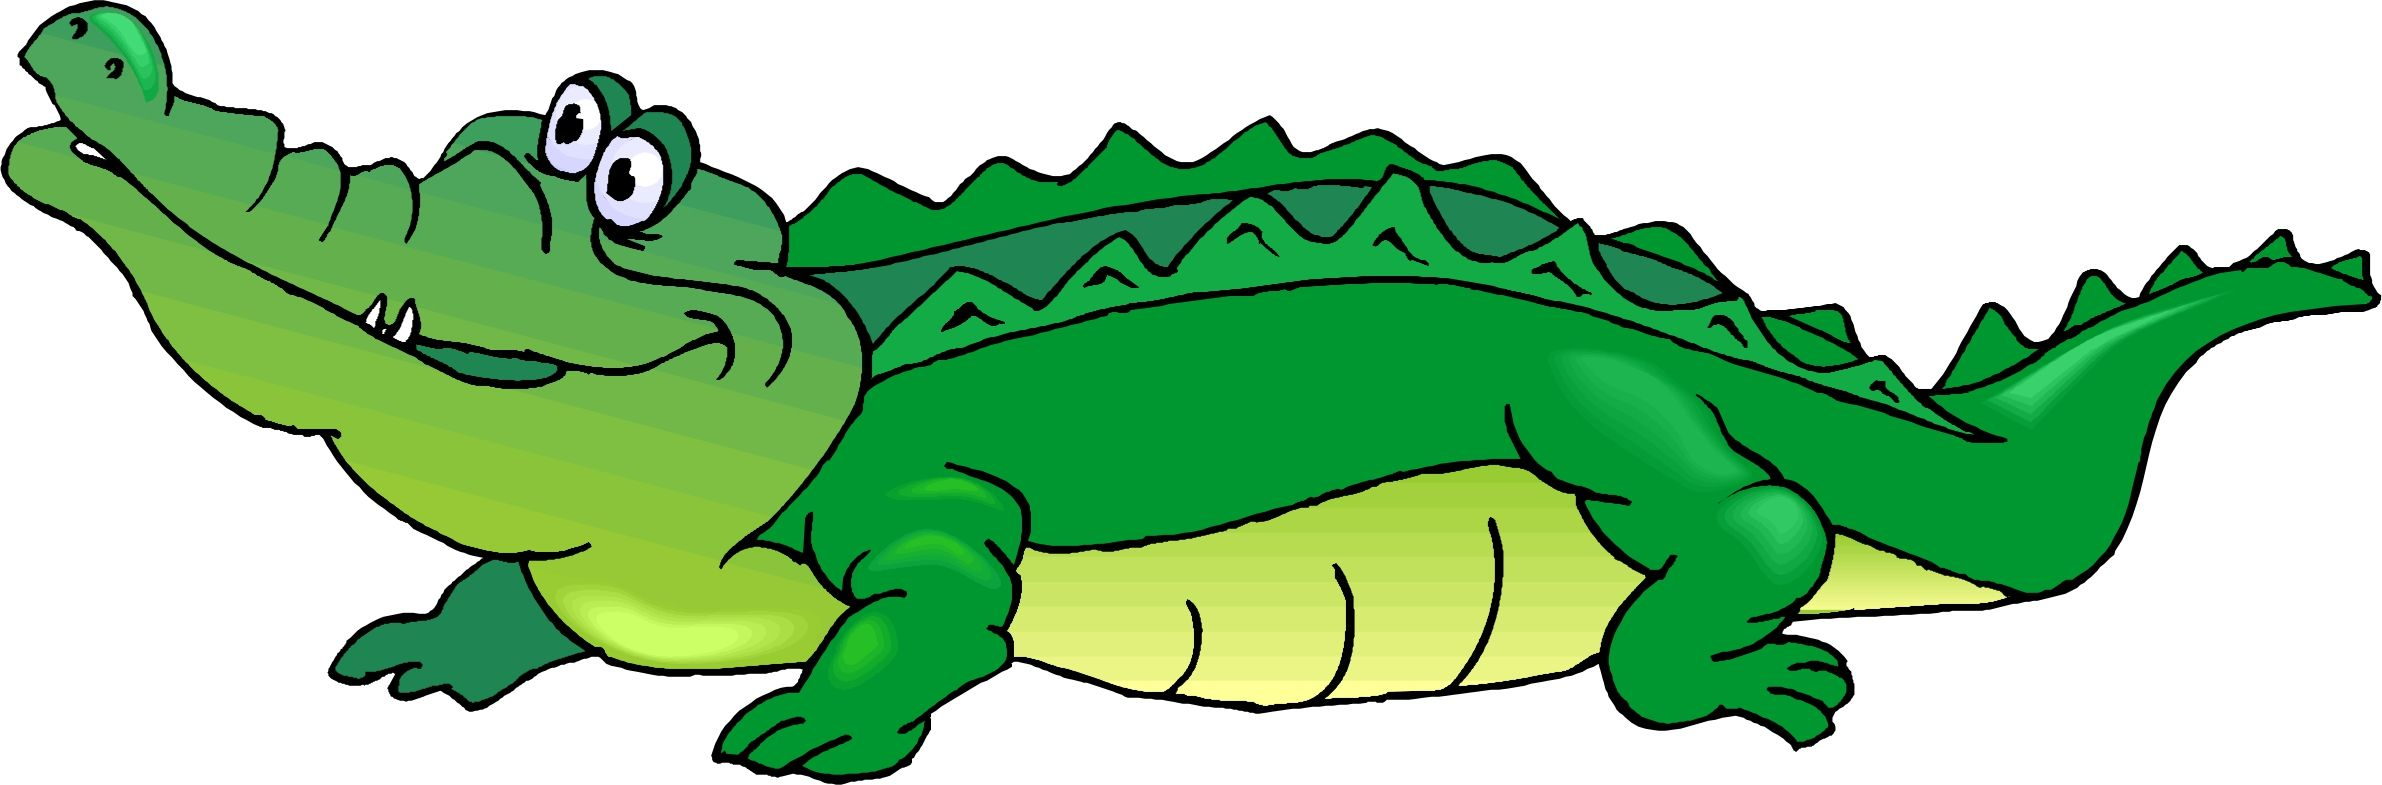 gator clip art use these free images for your websites art rh pinterest com clip art alligators free alligator clipart images